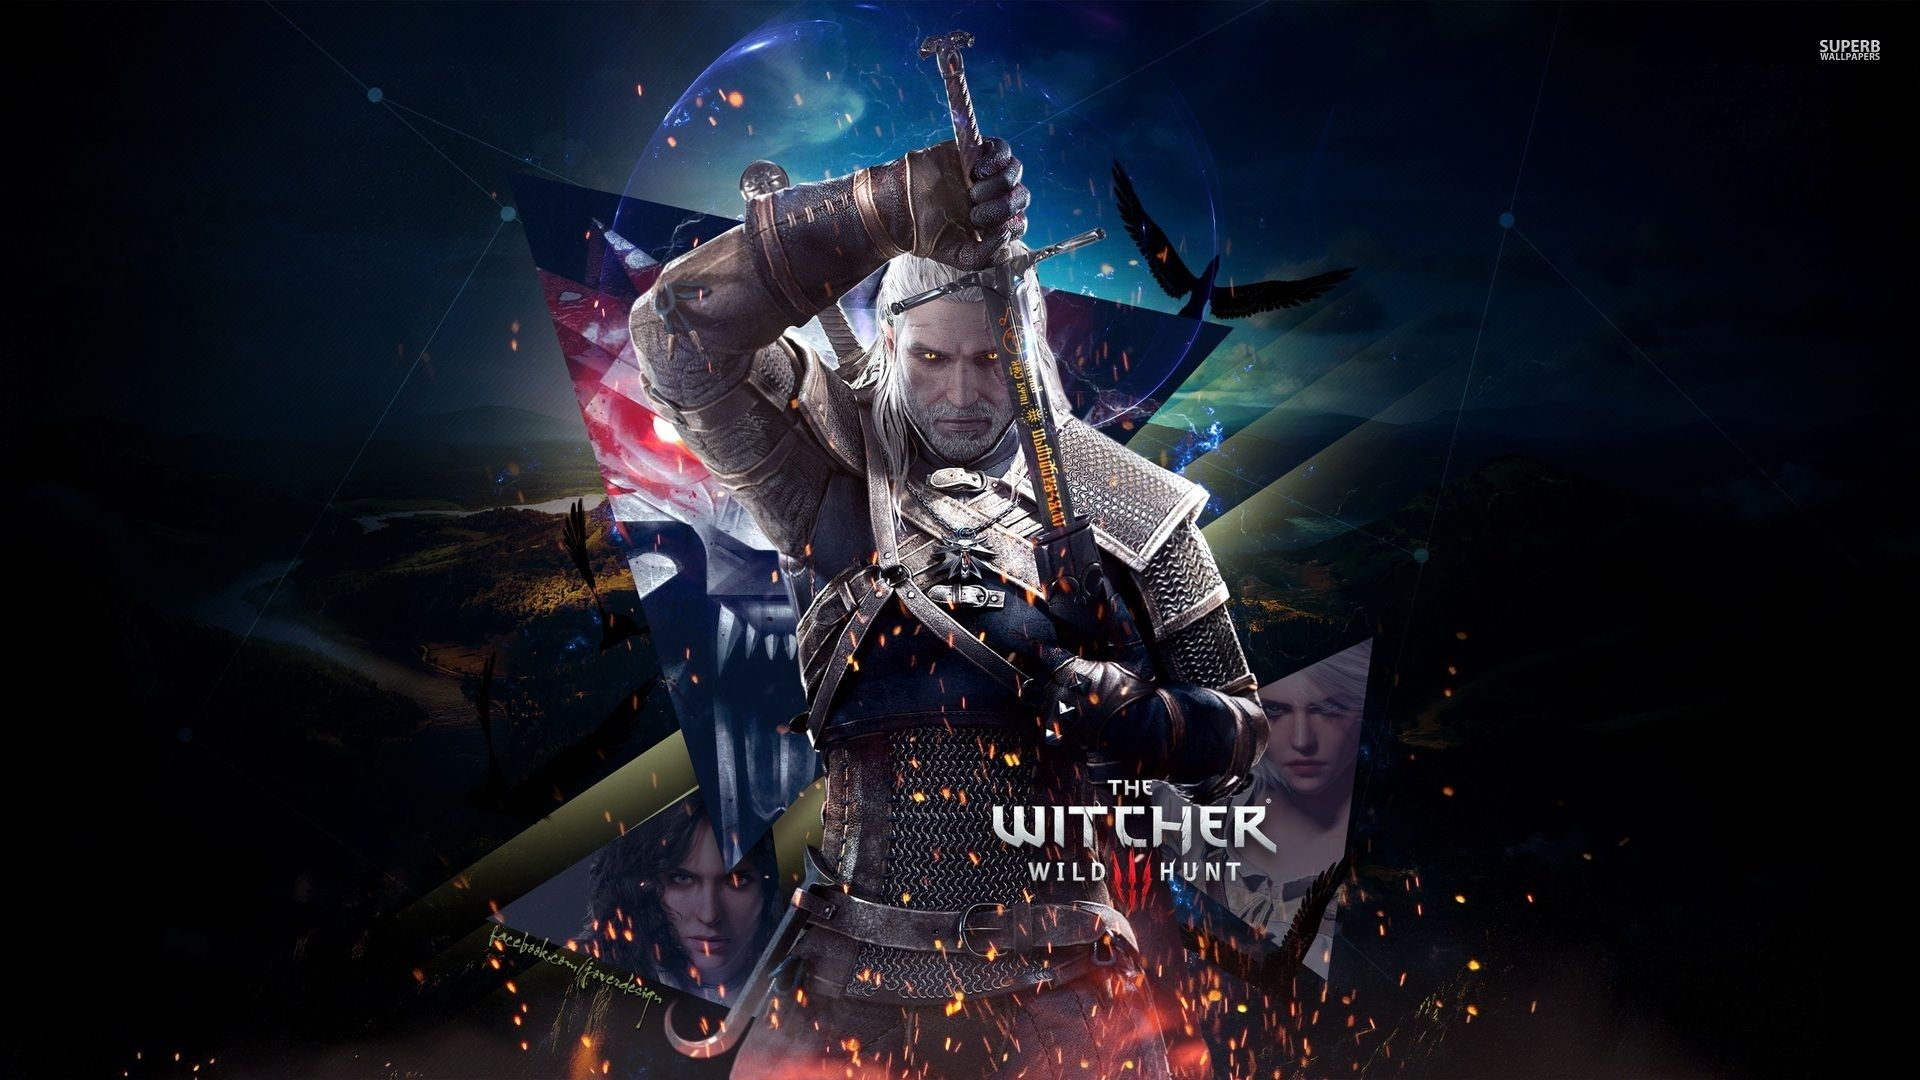 The Witcher 3 Wallpaper wallpaper. The witcher